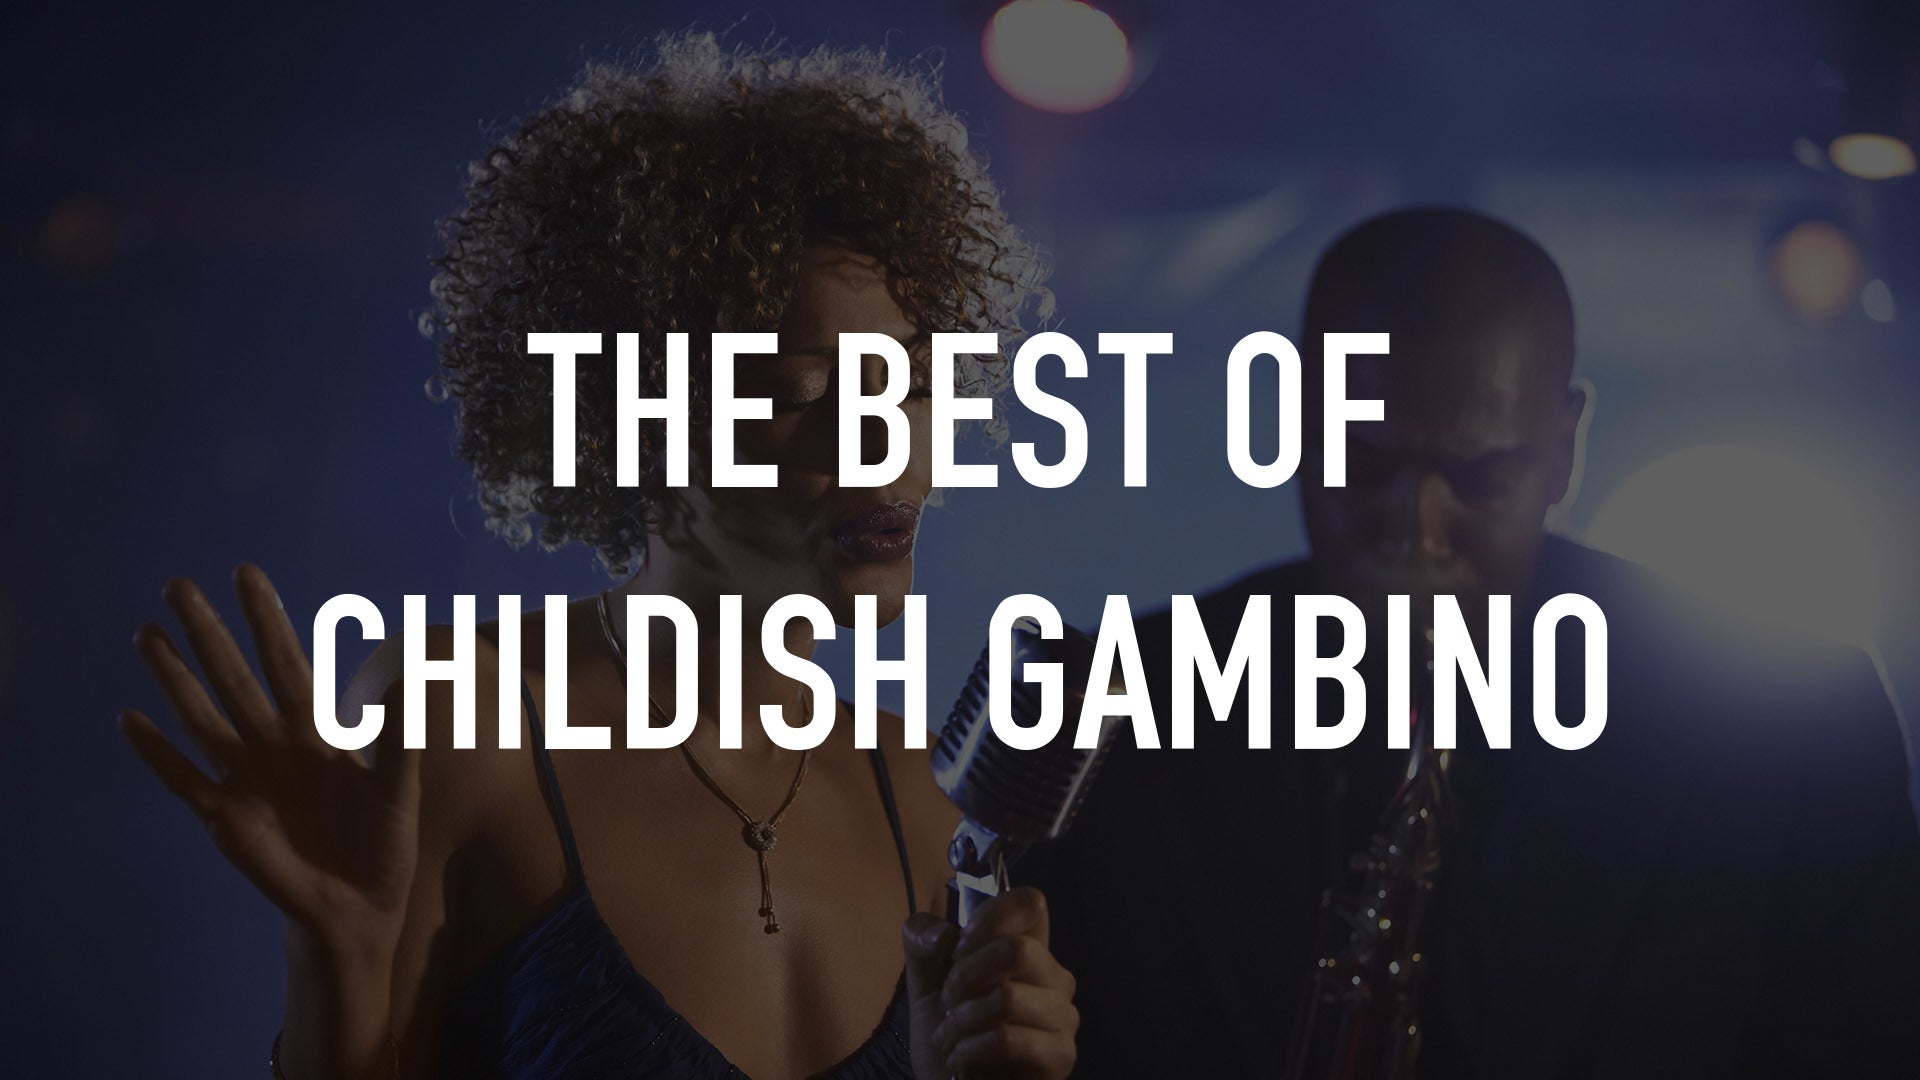 The Best of Childish Gambino